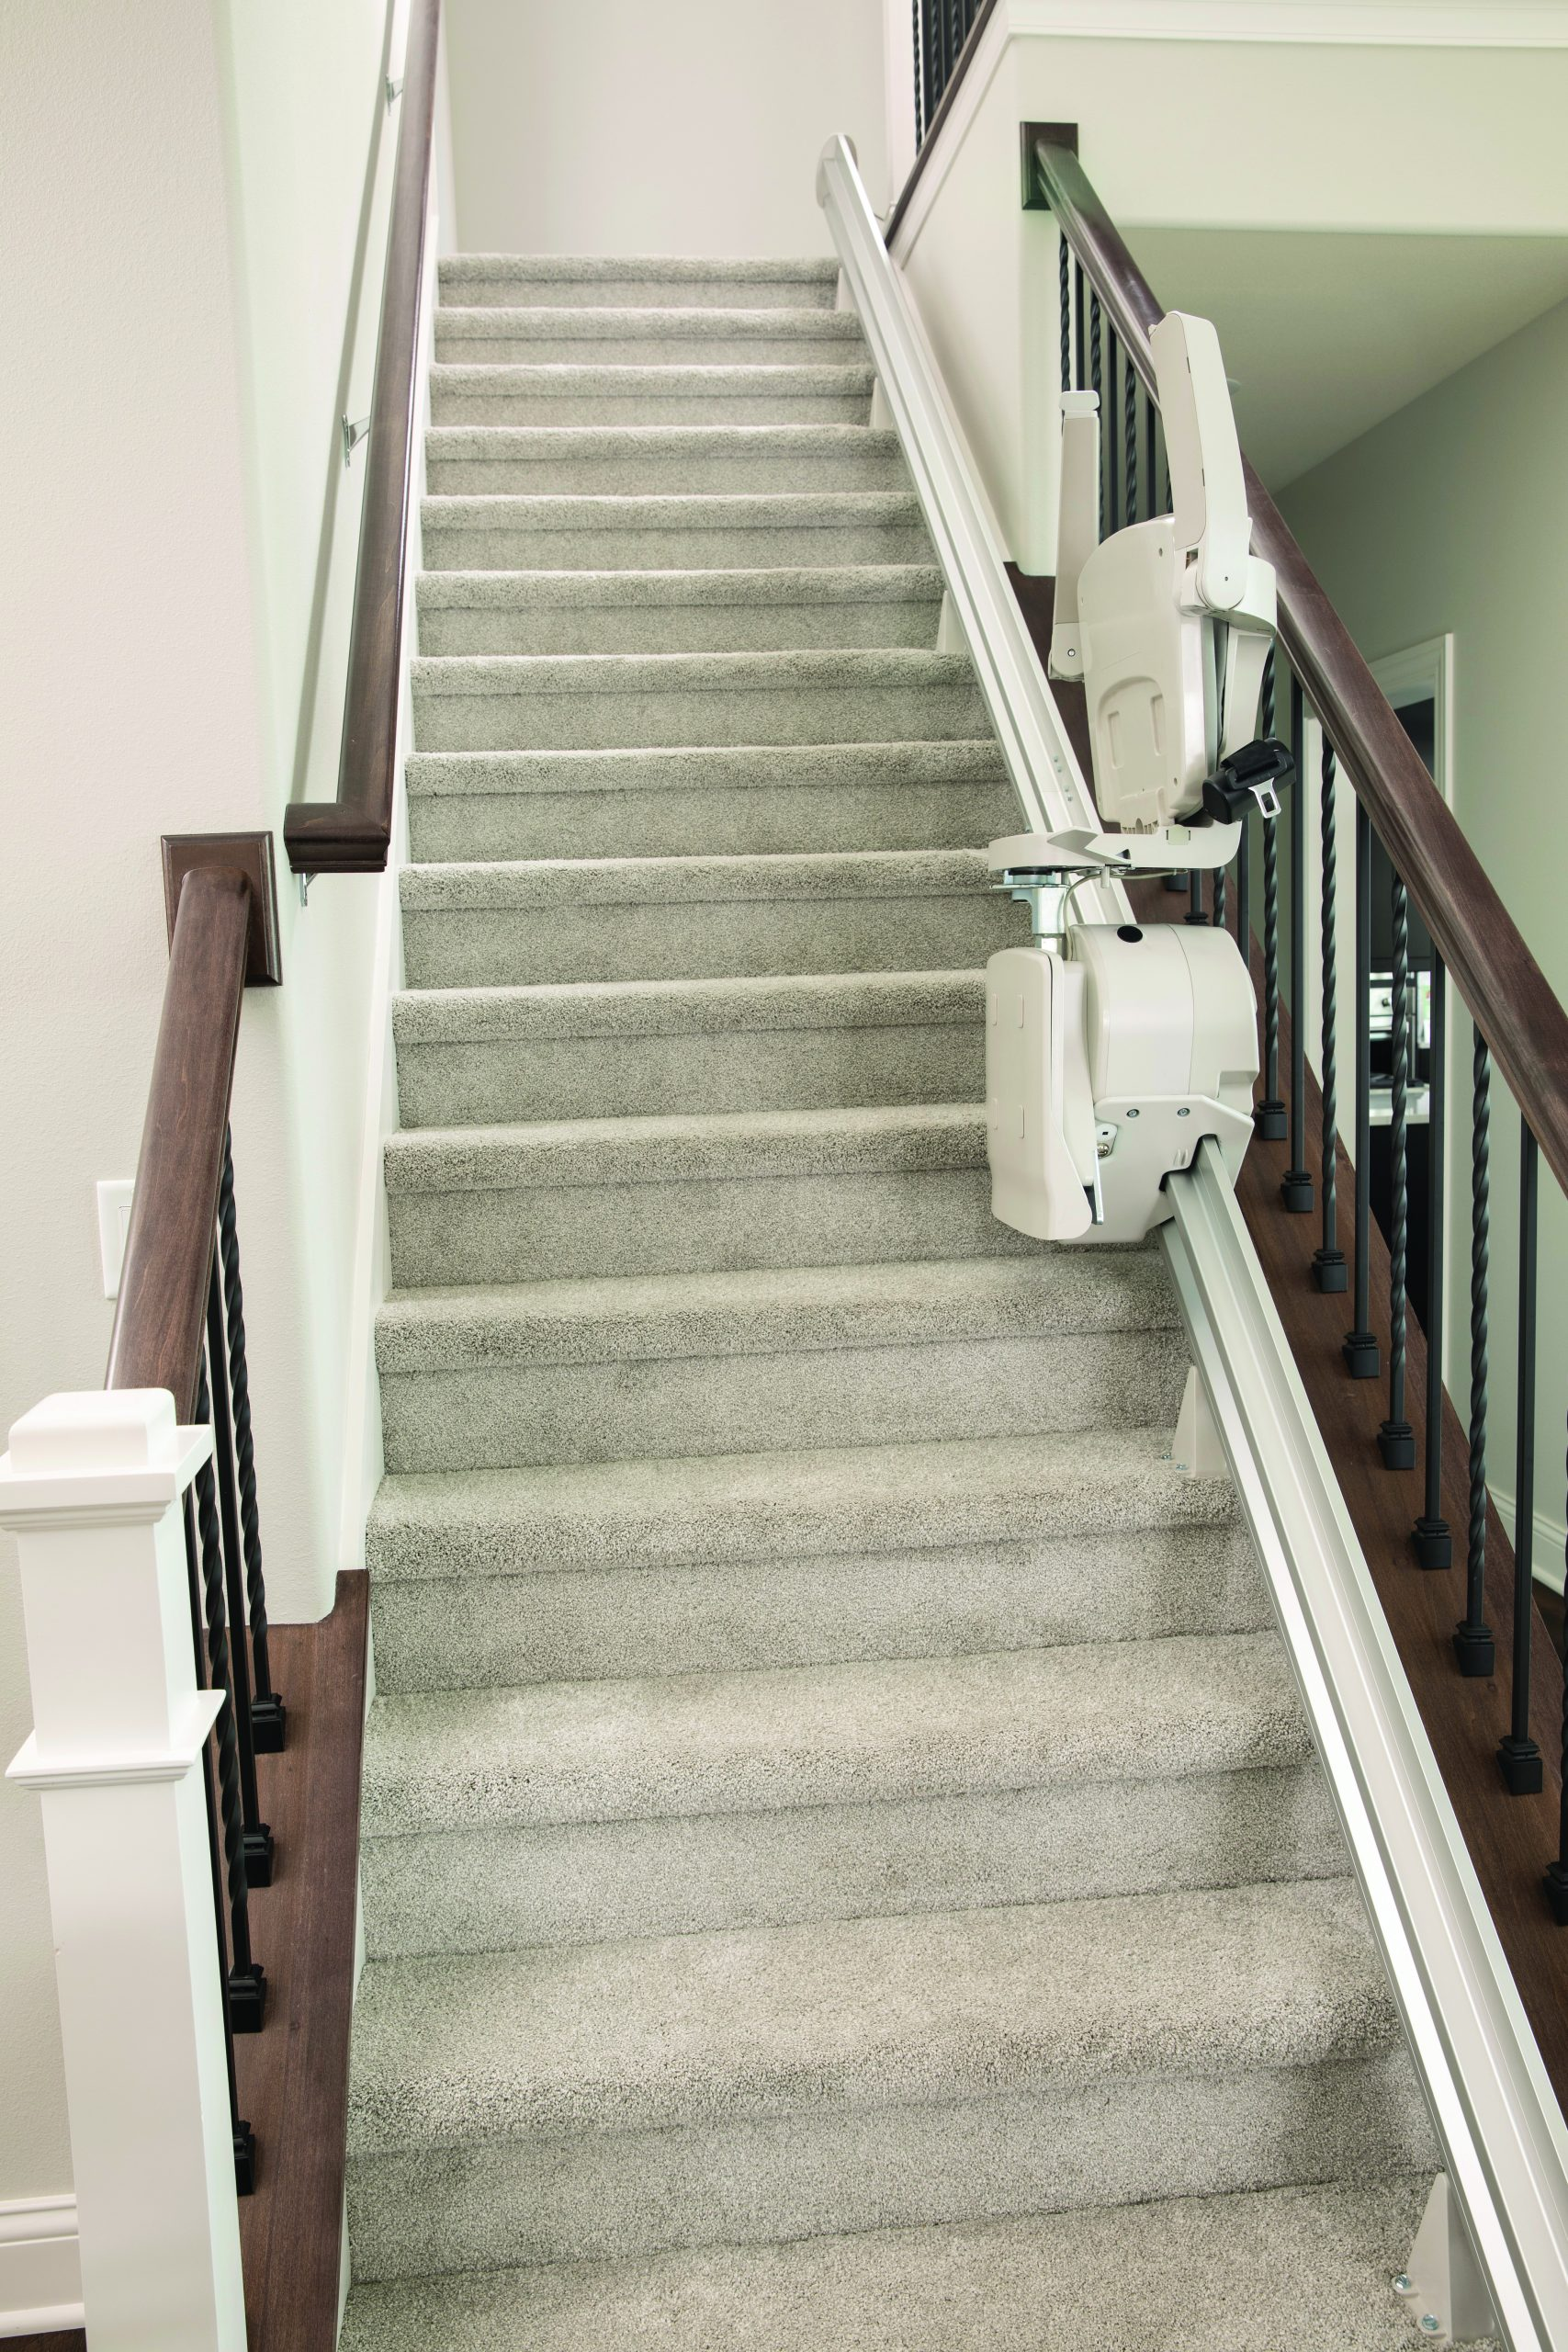 Bruno elan stair lift collapsed going up the stairs